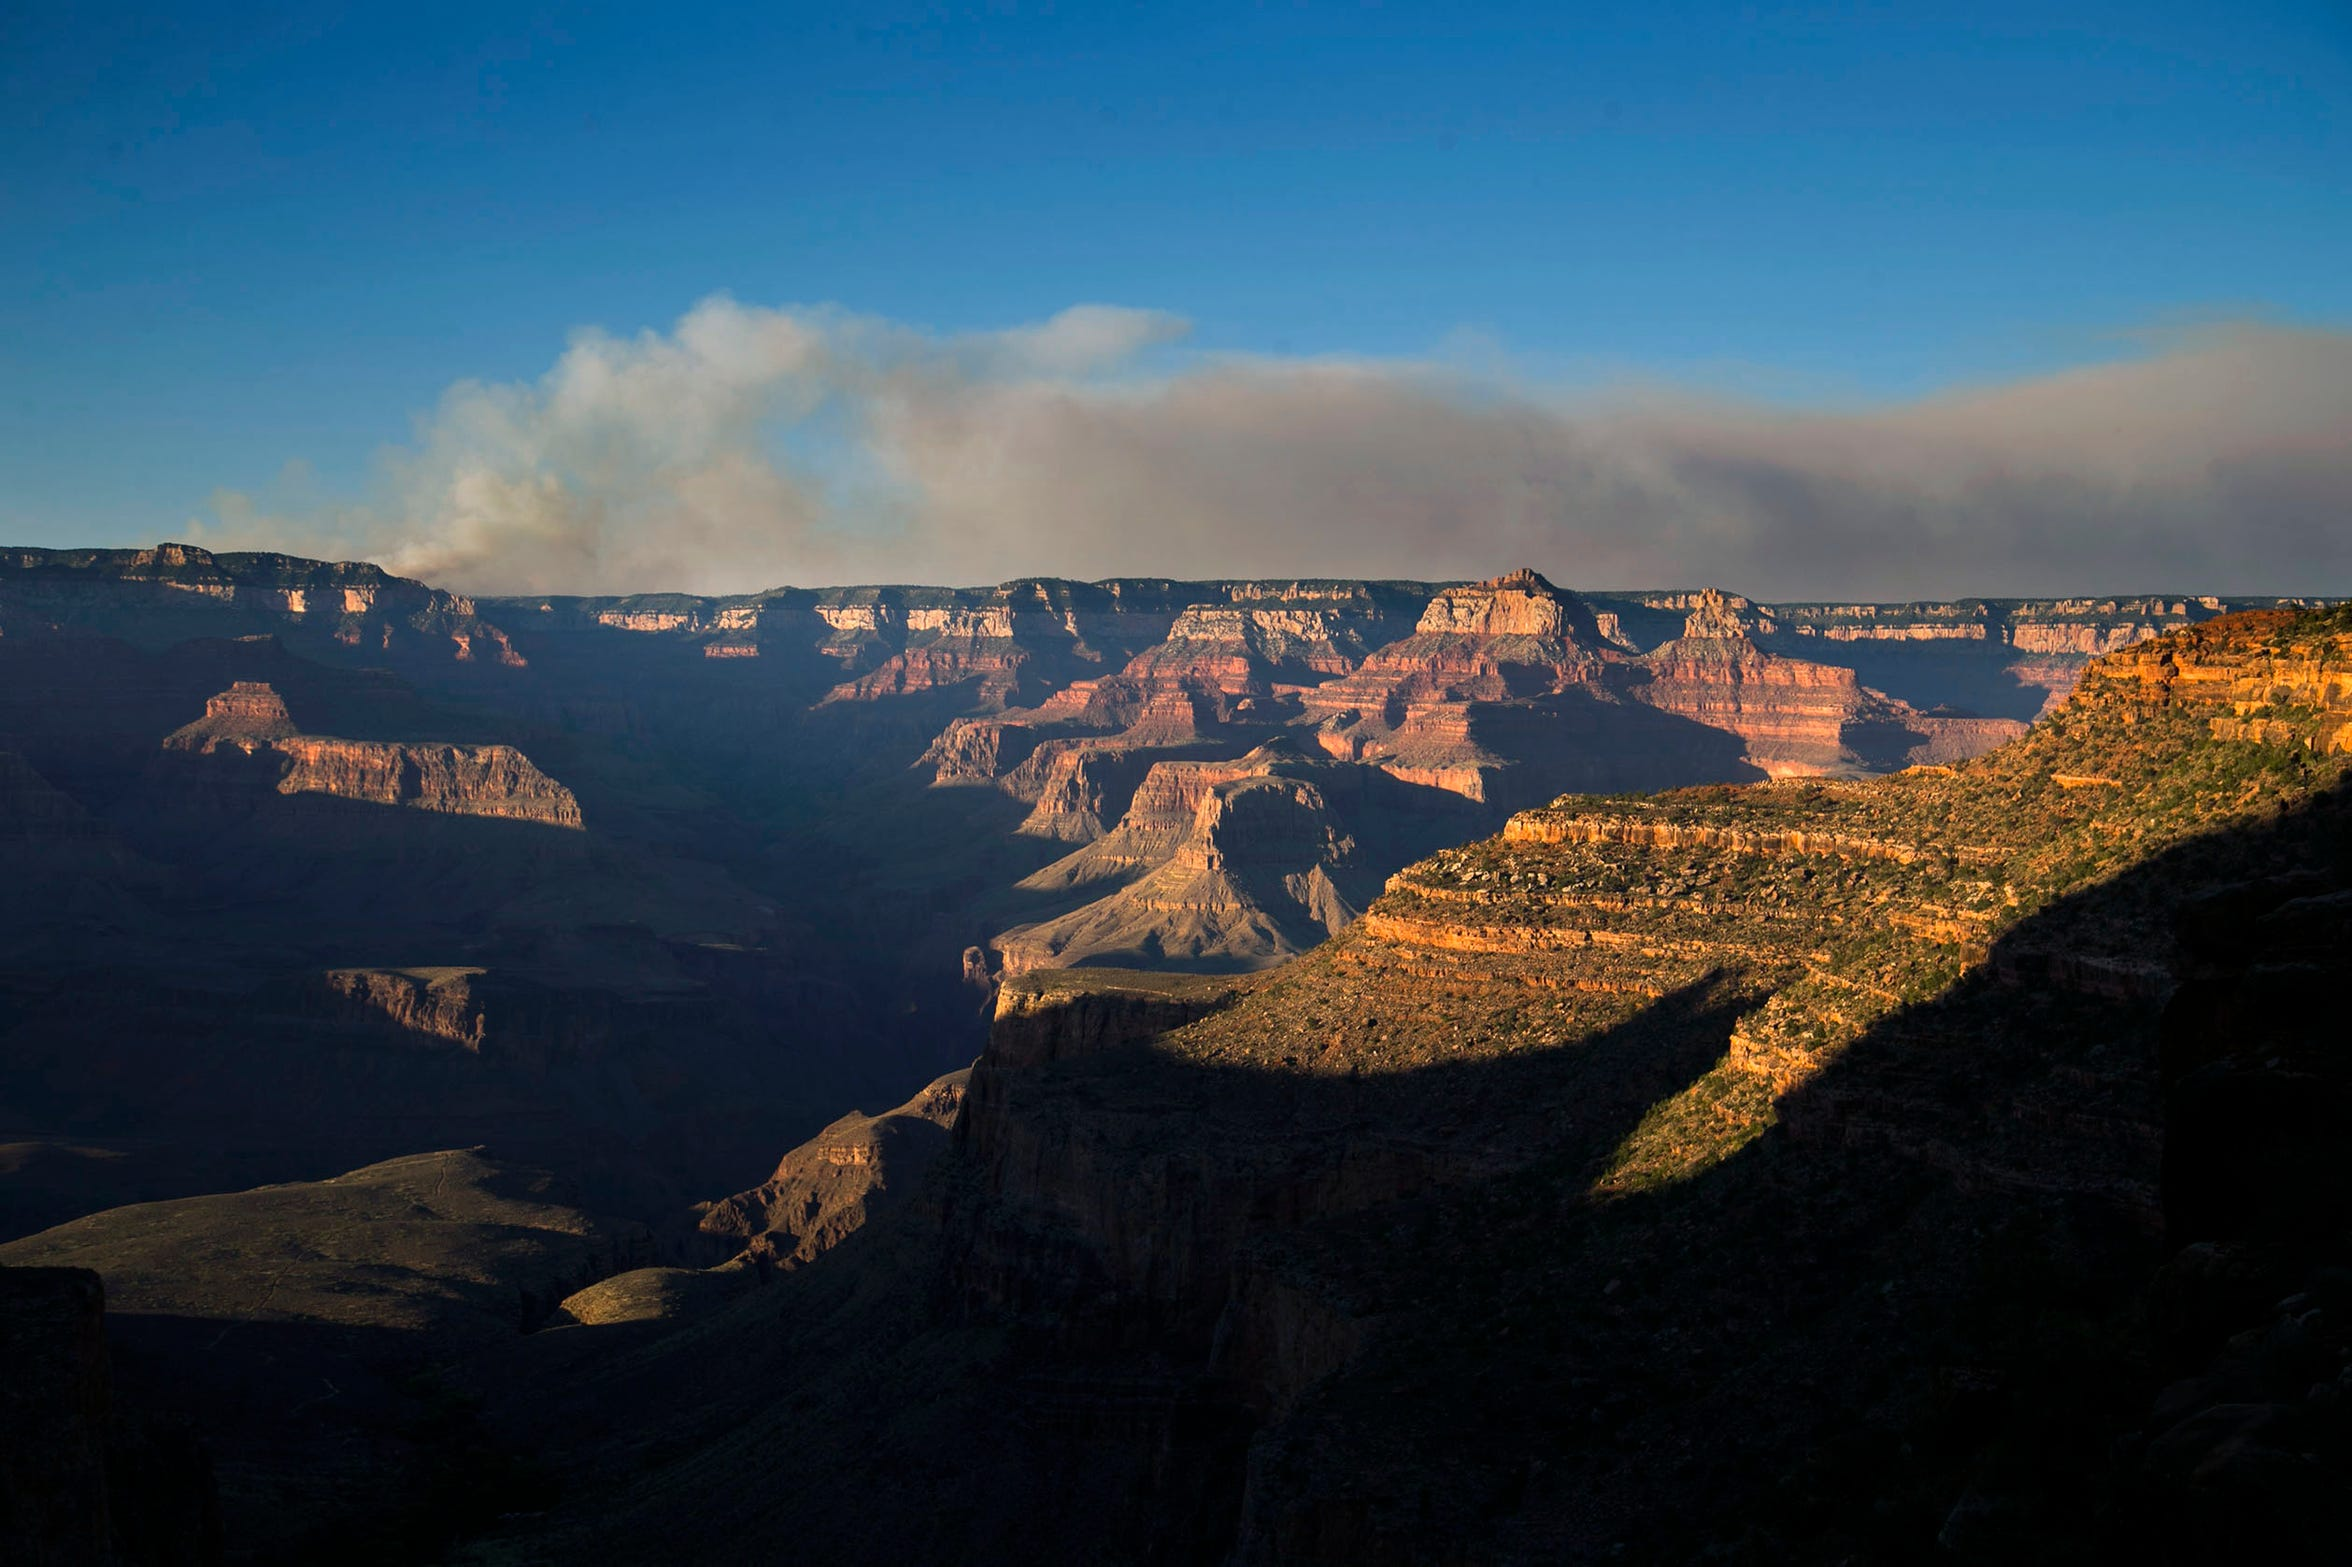 The Fuller Fire burns on the north rim of the Grand Canyon as seen from the Bright Angel Trail below the south rim of the canyon in Grand Canyon National Park on  July 14, 2016.